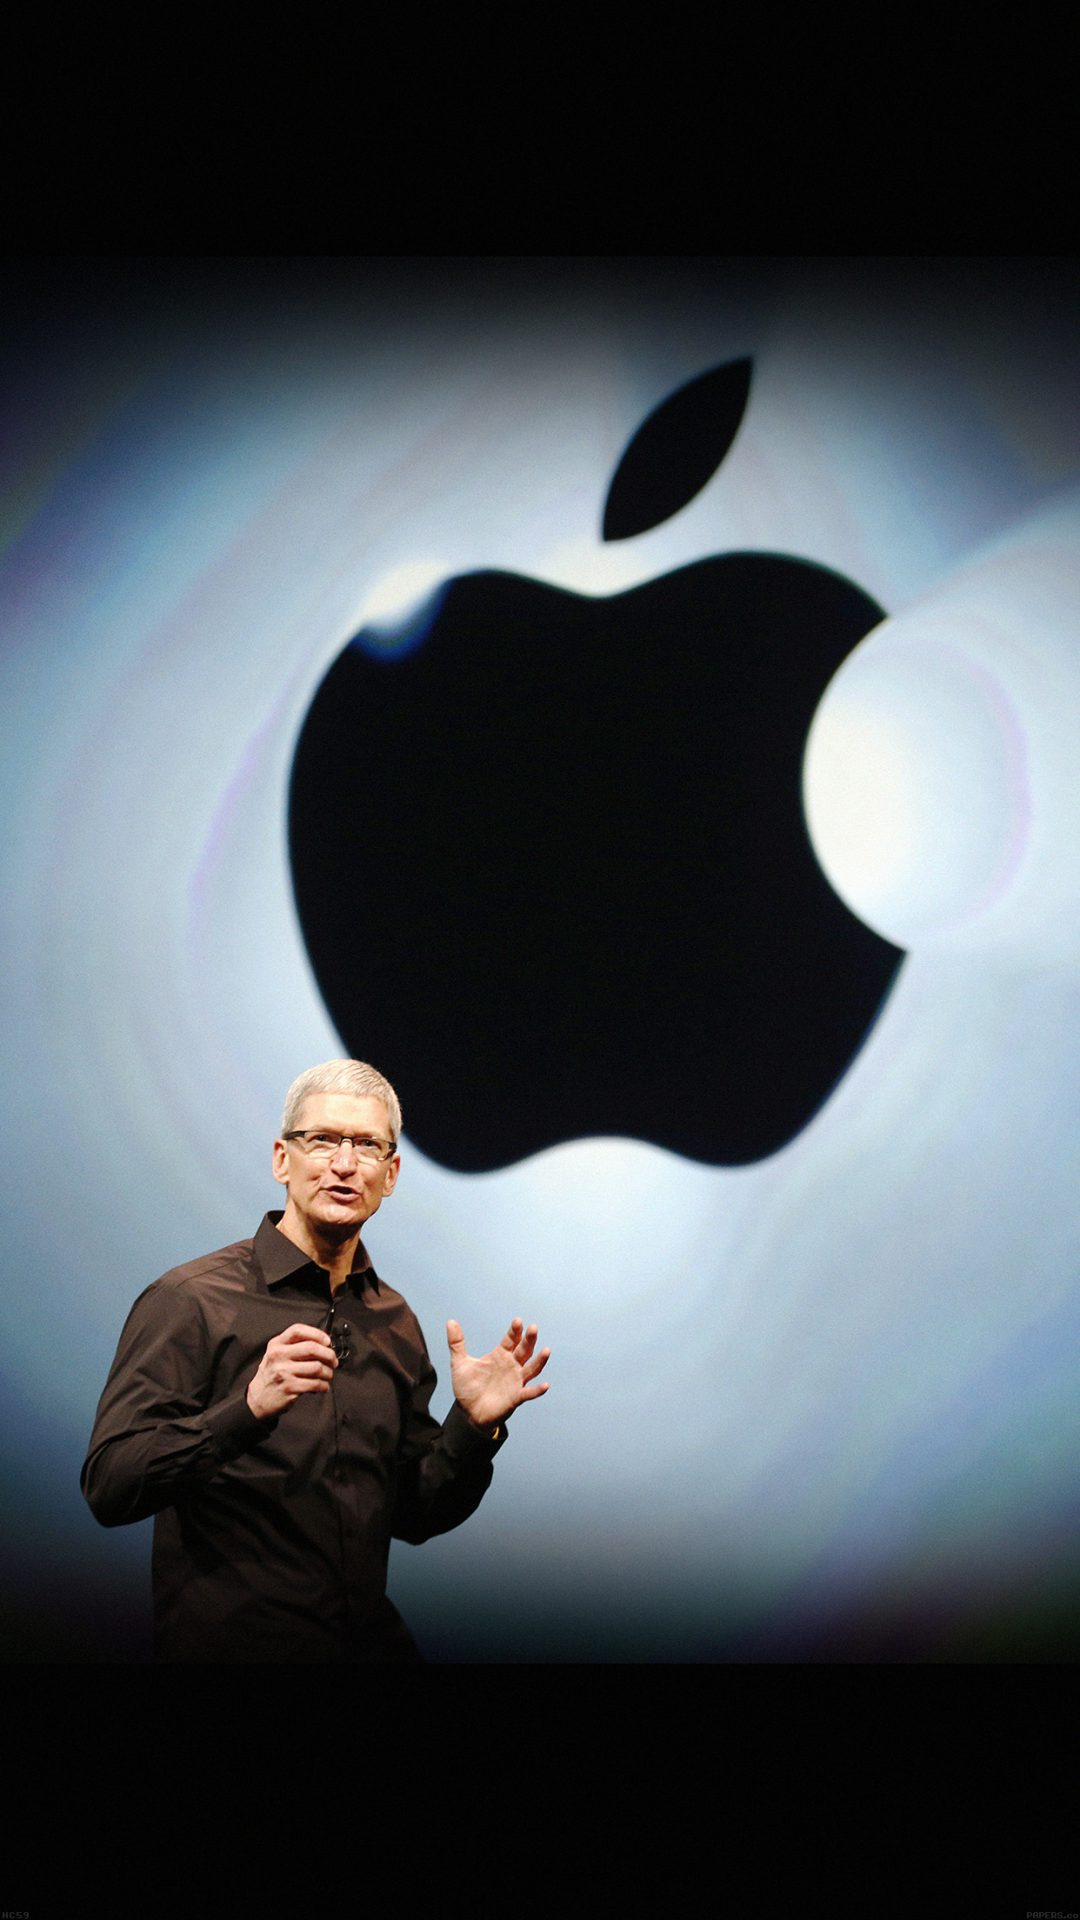 Apple Inc. CEO Tim Cook takes the stage during Apple Inc.'s iPhone media event in San Francisco, California September 12, 2012.    REUTERS/Beck Diefenbach (UNITED STATES  - Tags: SCIENCE TECHNOLOGY BUSINESS)